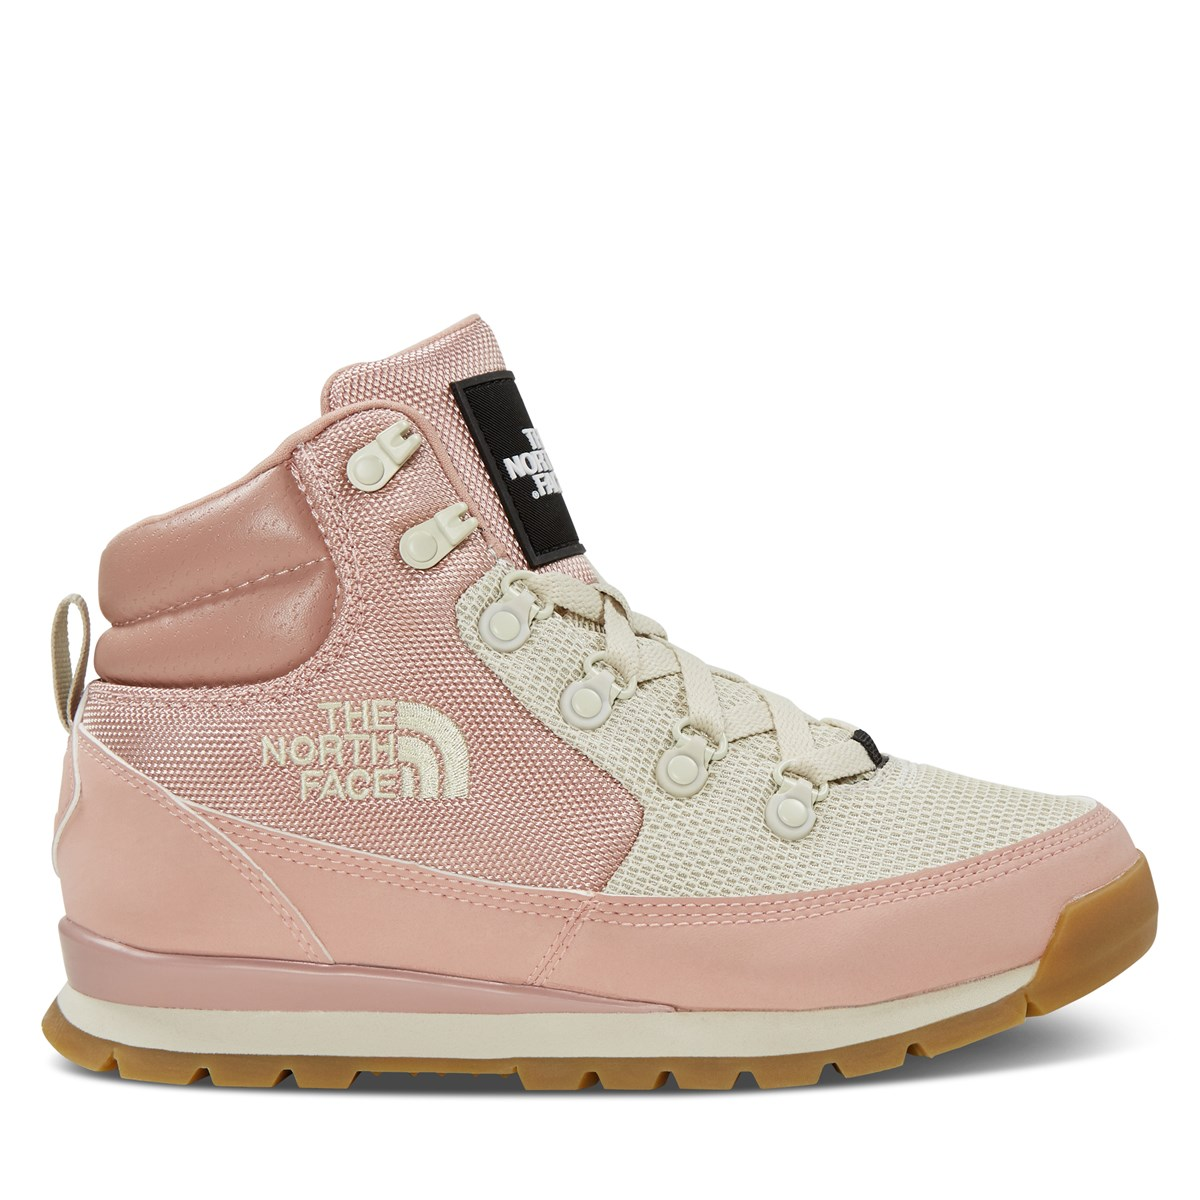 Women's Back-to-Berkeley Redux Boots in Pink